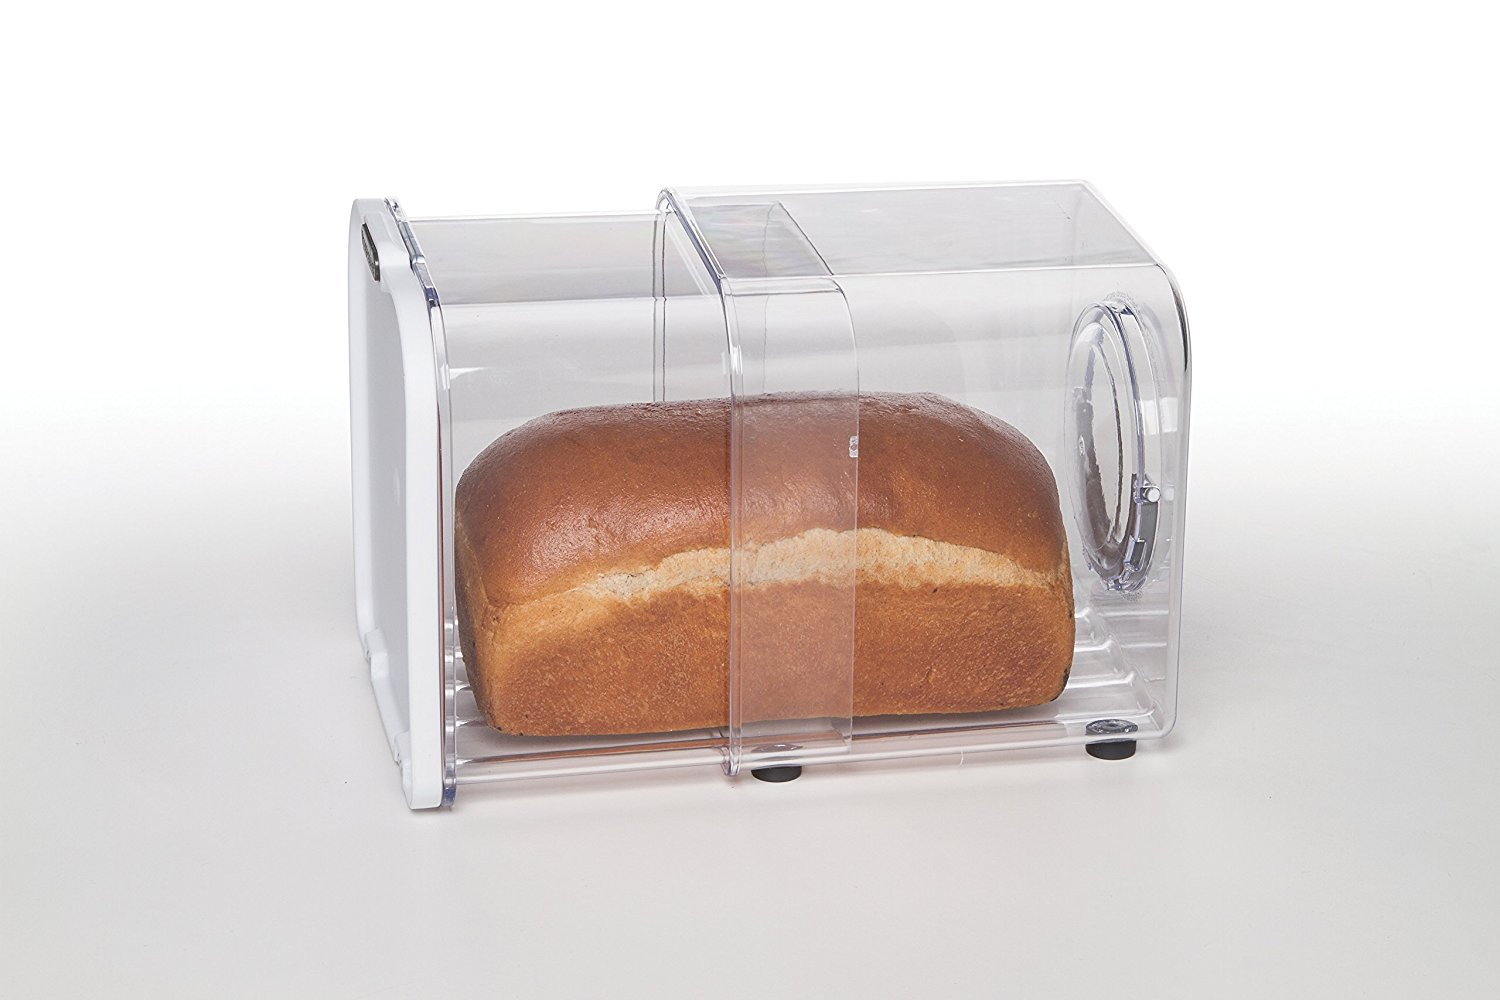 Bread Keeper Home and Garden - Shopping.com